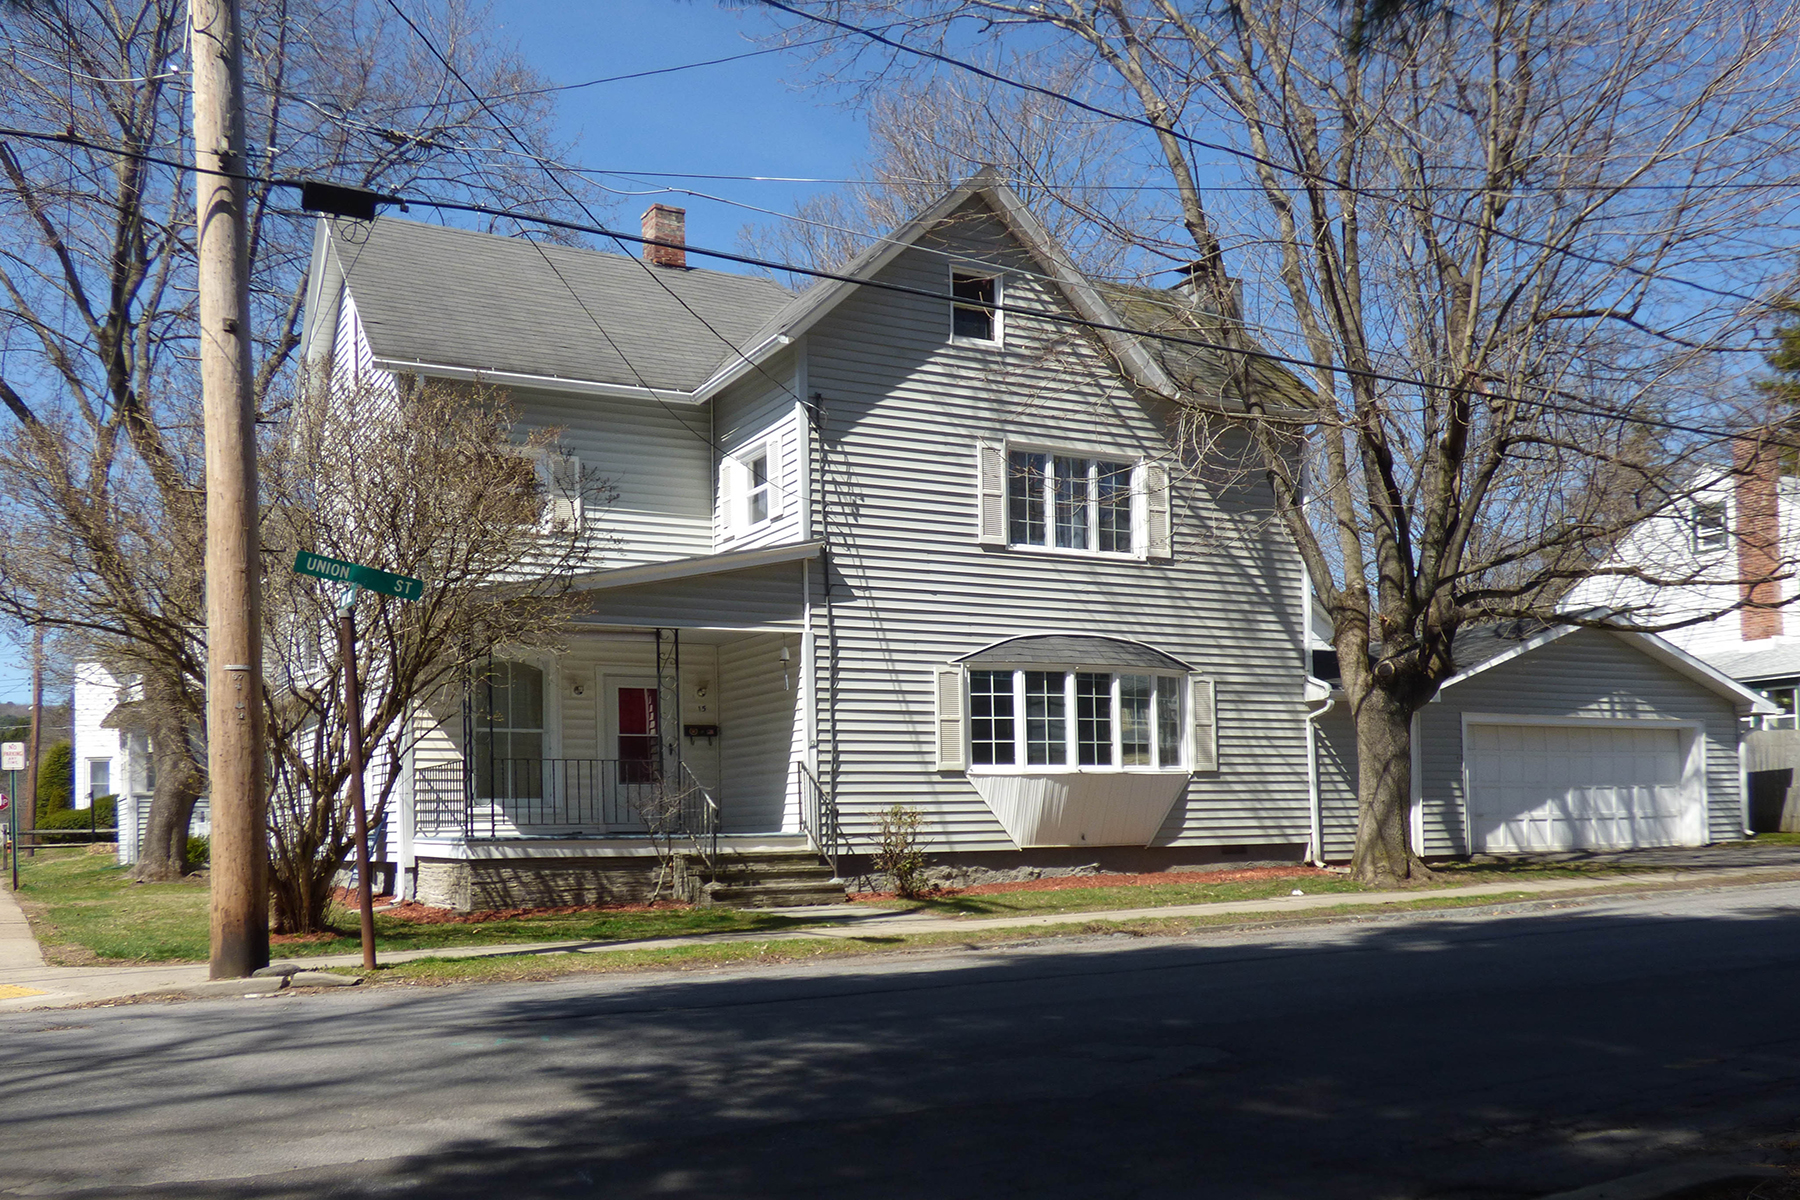 Single Family Home for Sale at Wilber Park Beauty 15 Union Street Oneonta, New York 13820 United States